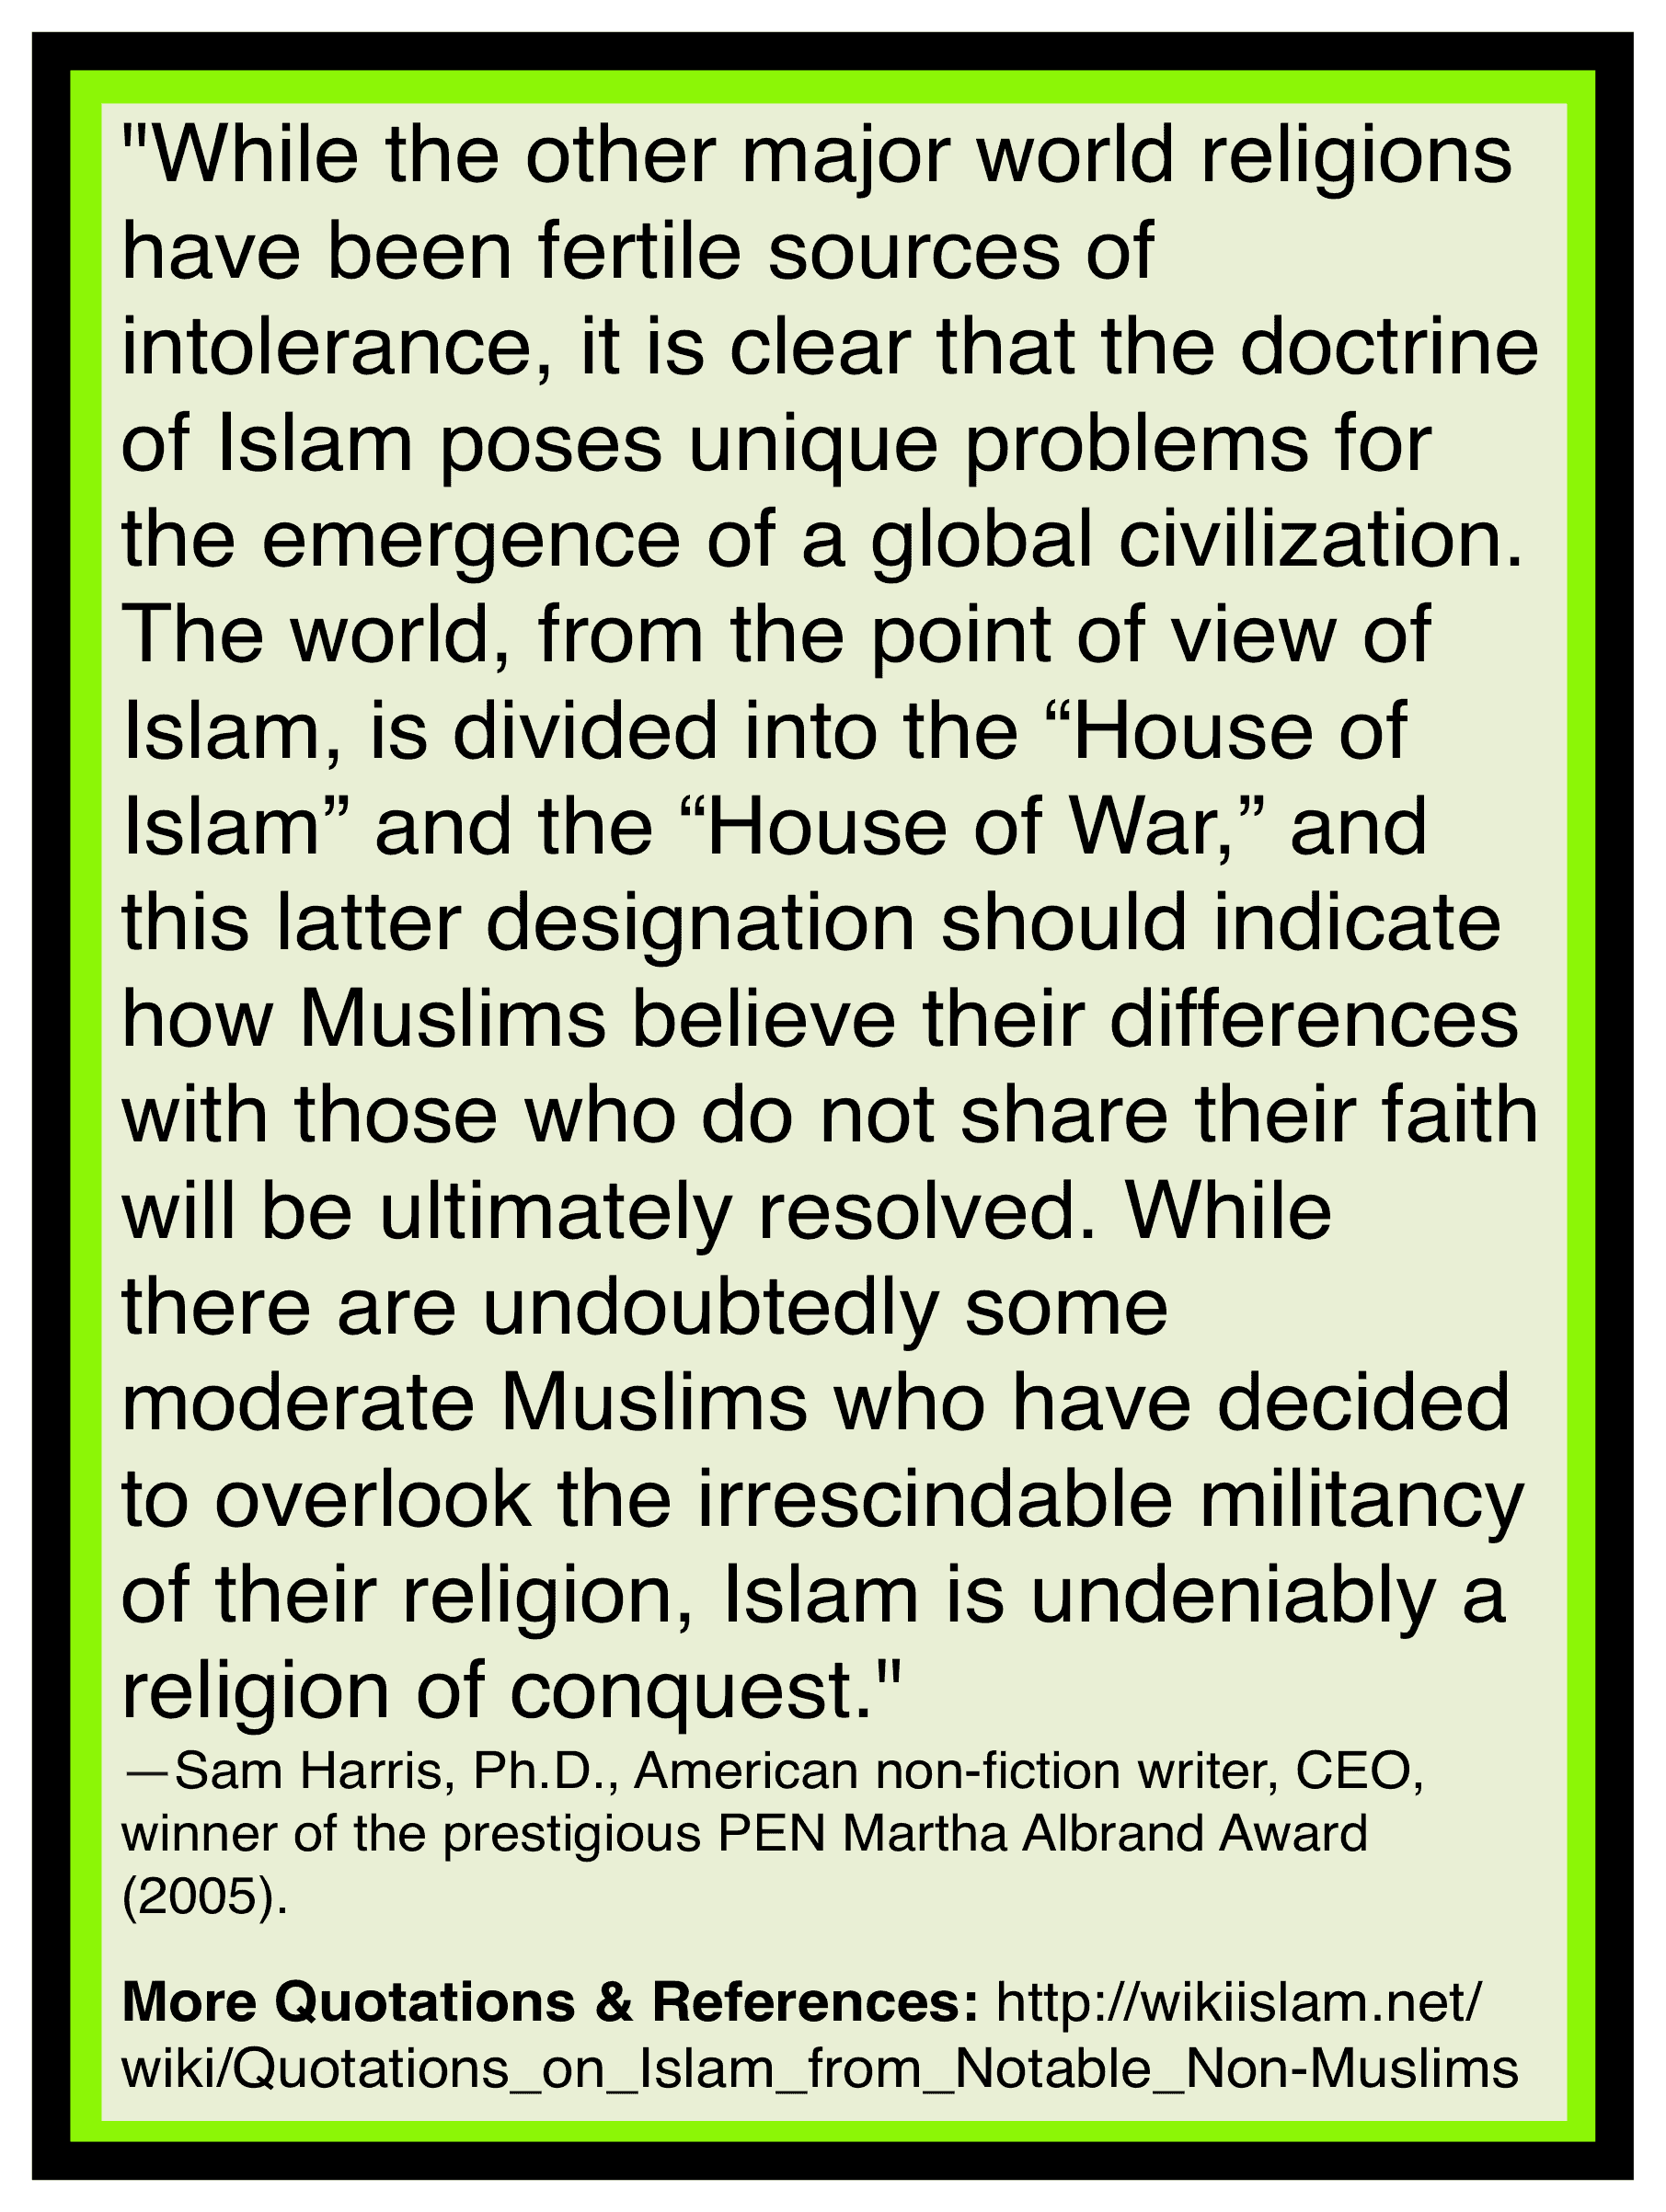 Islam is about conquest